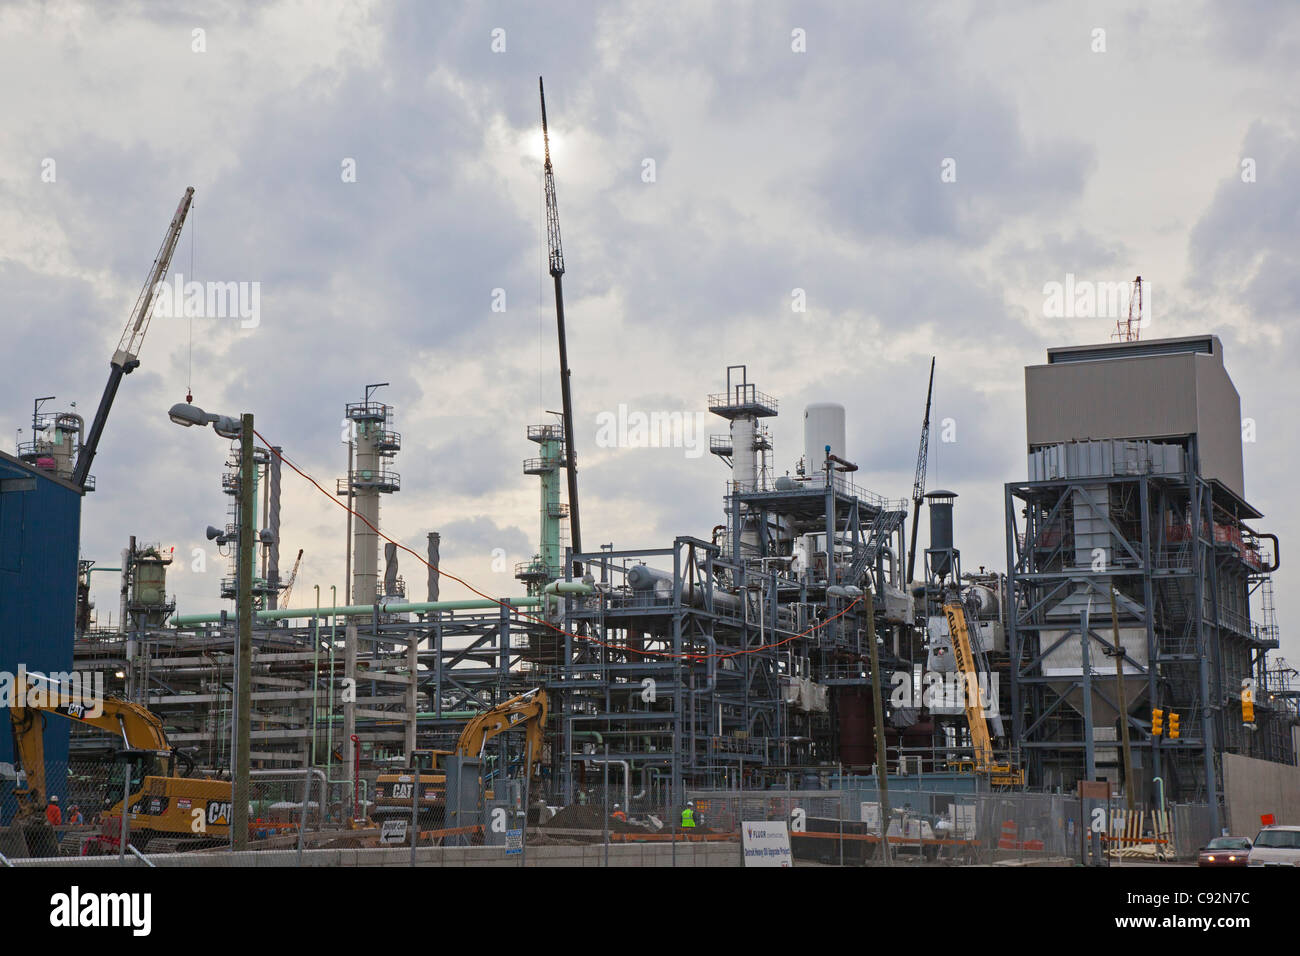 Expansion of Marathon Refinery to Facilitate Processing of Oil Sands Heavy Crude - Stock Image